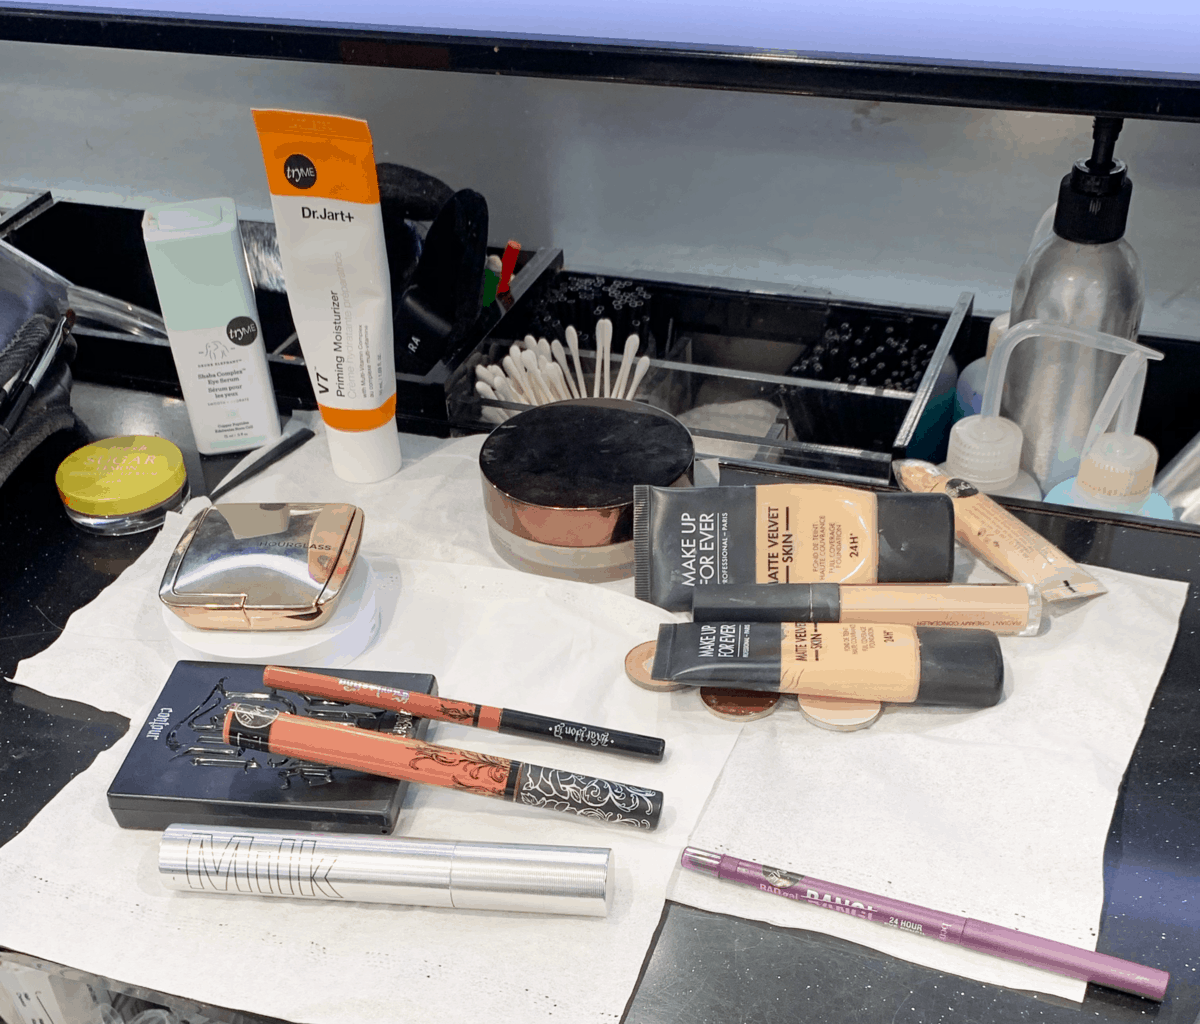 The Best Beauty Gifts - Sephora VIB sale